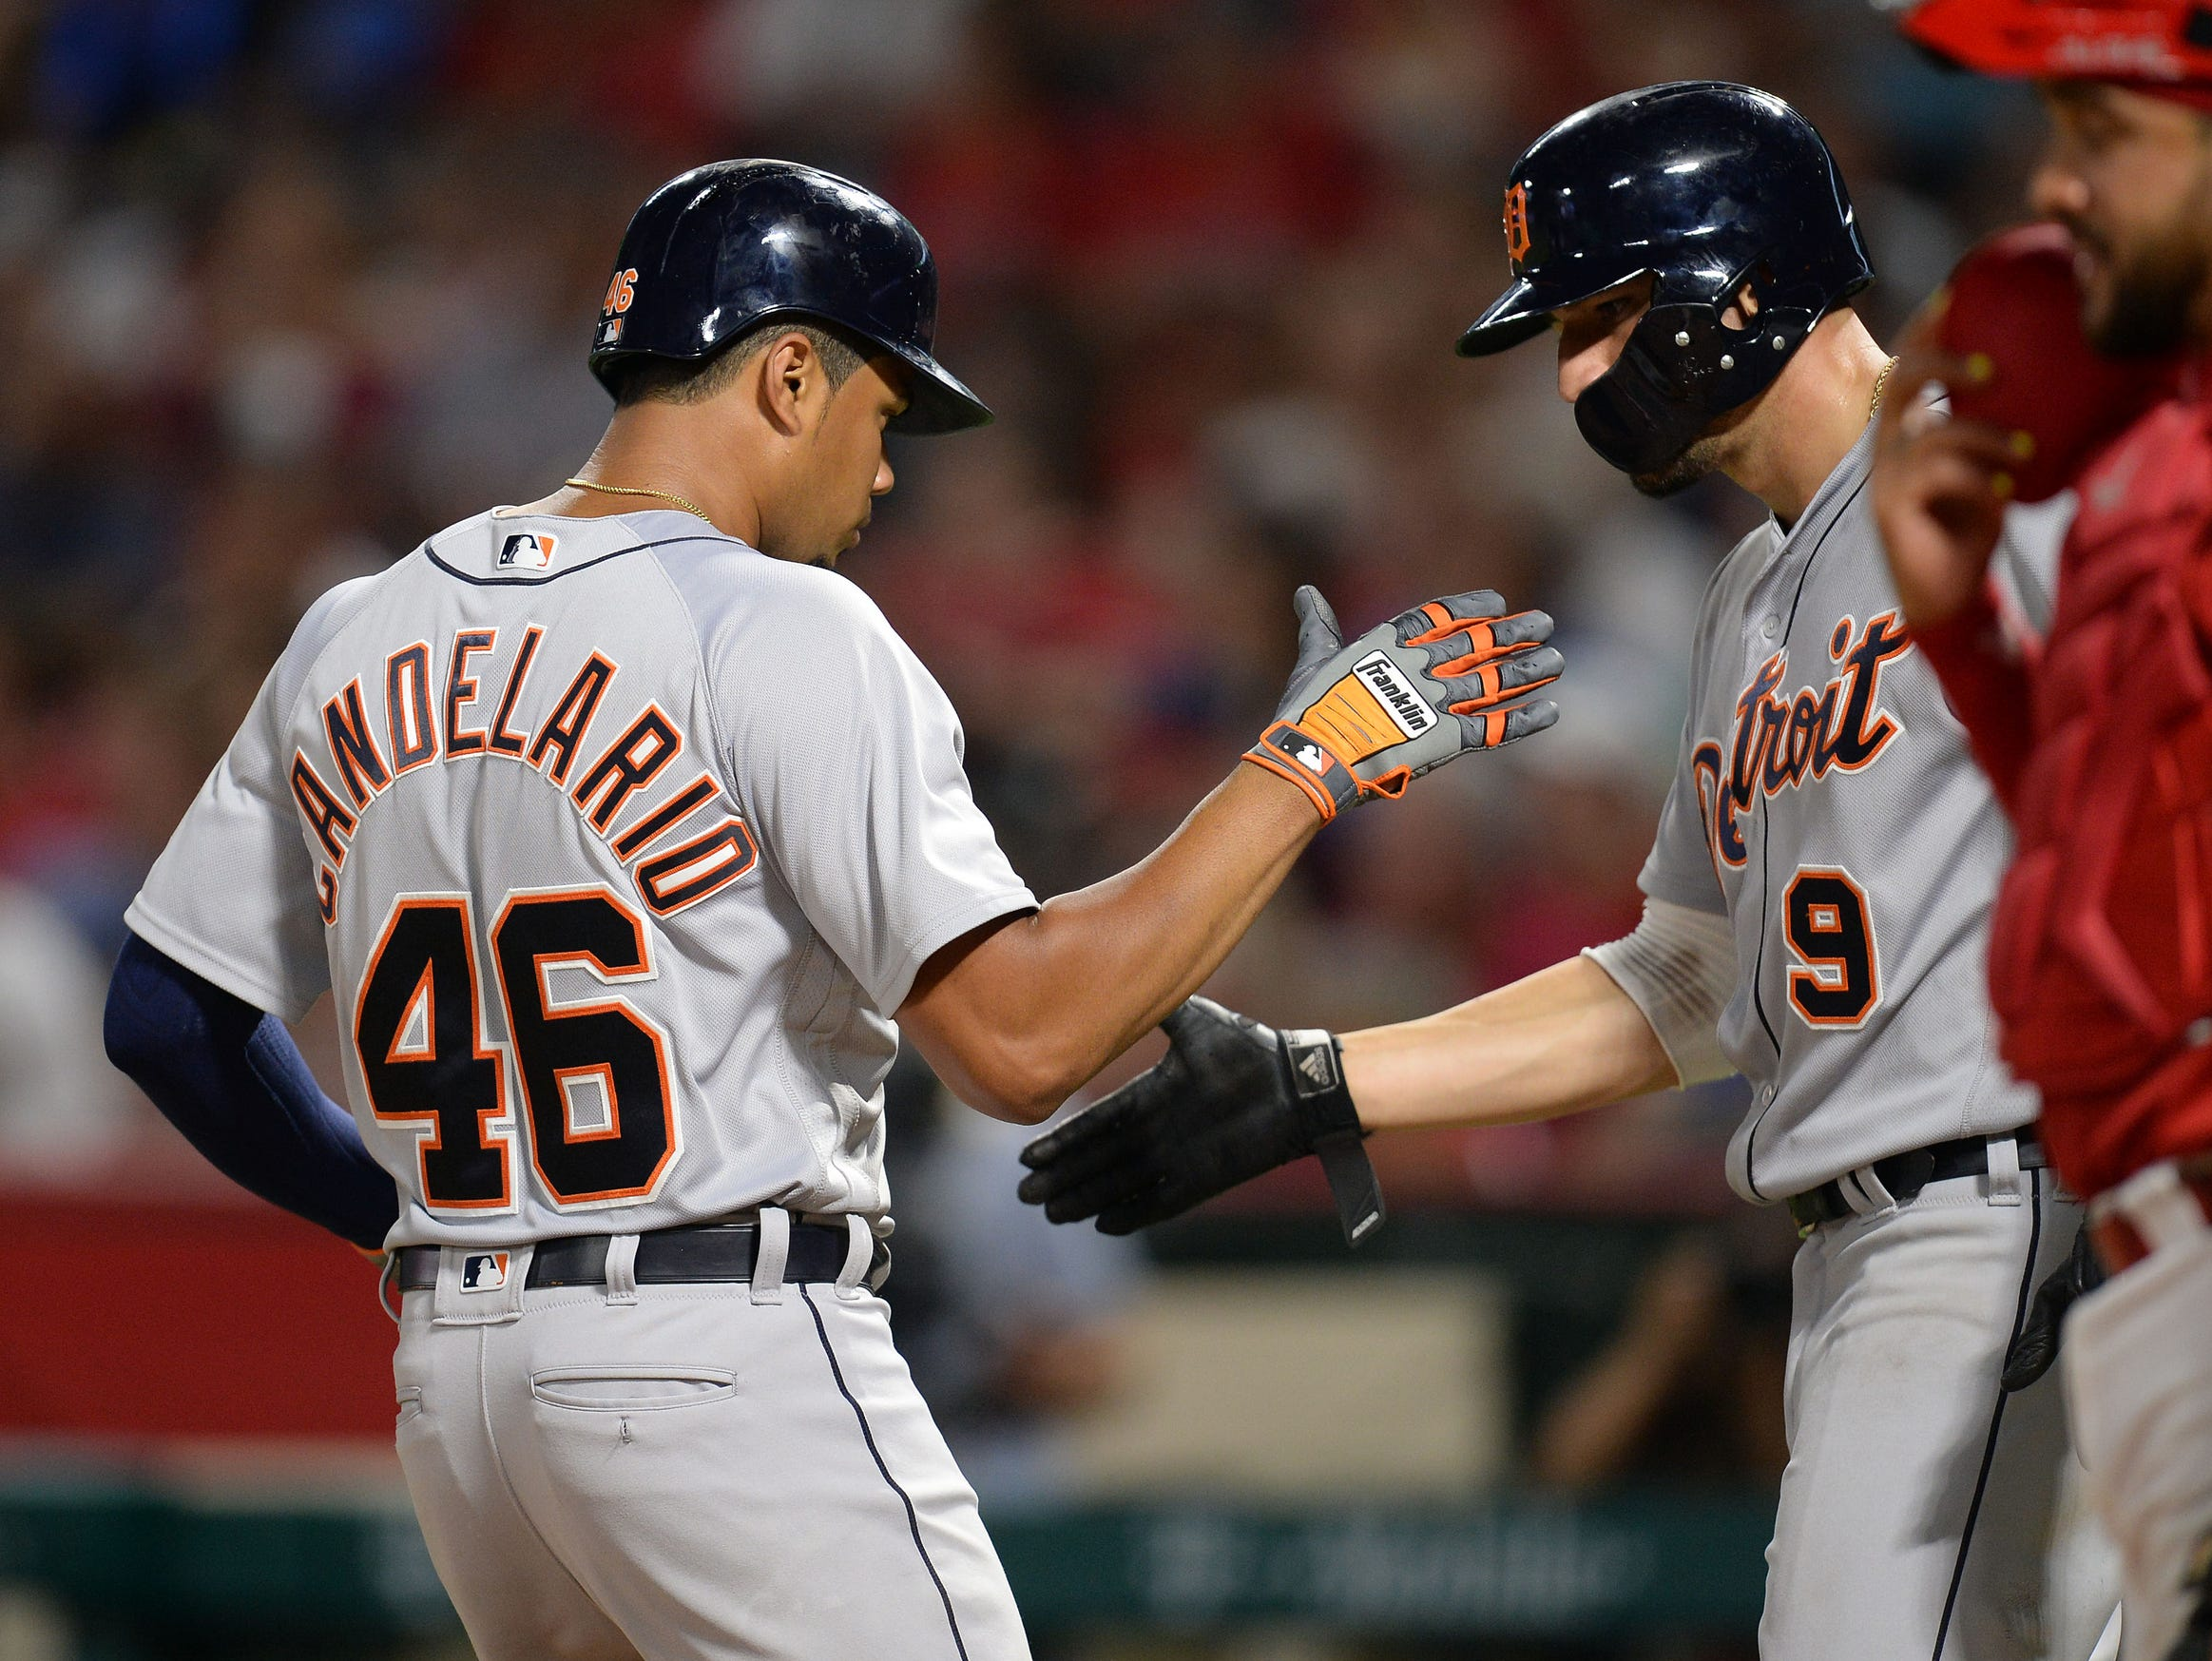 Tigers third baseman Jeimer Candelario is greeted by right fielder Nicholas Castellanos after hitting a two-run home run in the fifth inning on Tuesday, Aug. 7, 2018, in Anaheim, Calif.